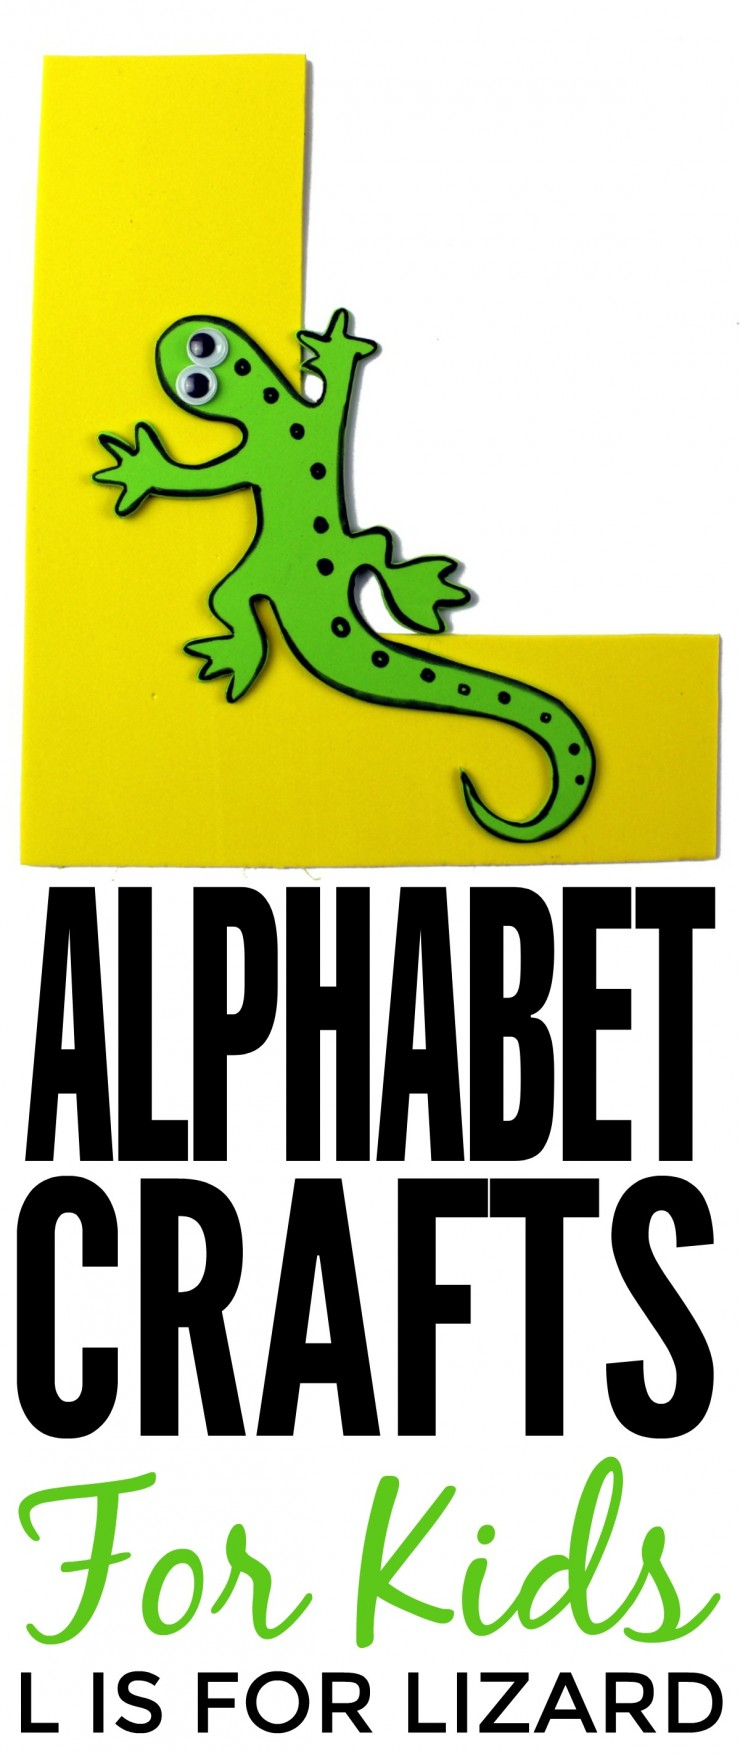 This week in my series of ABCs kids crafts featuring the Alphabet, we are doing a L is for Lizard craft. These Alphabet Crafts For Kids are a fun way to introduce your child to the alphabet.